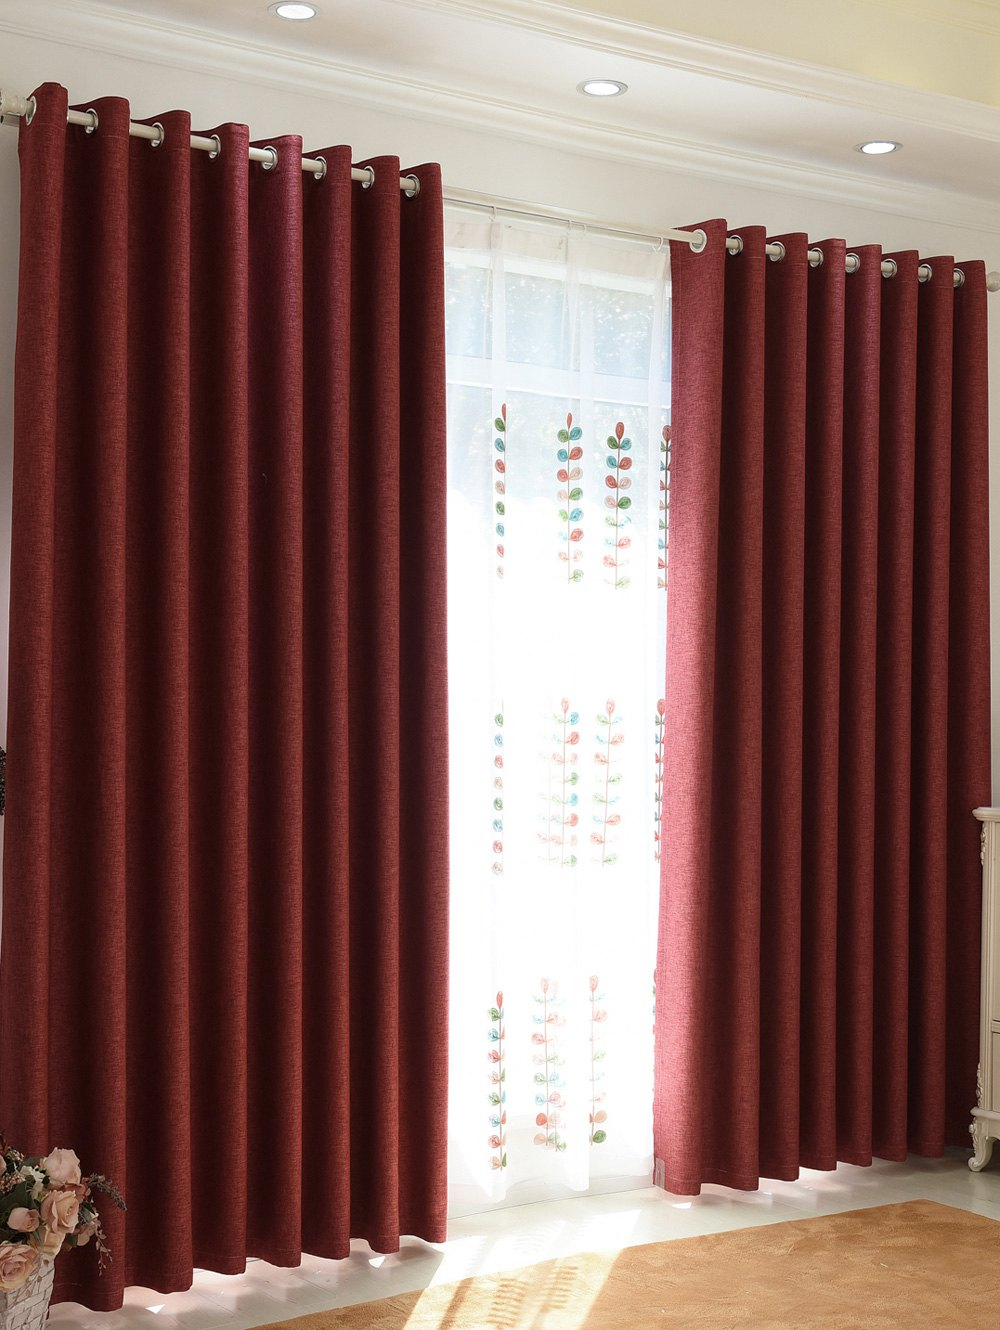 Shading Accueil Chambre Perforated Window Curtain